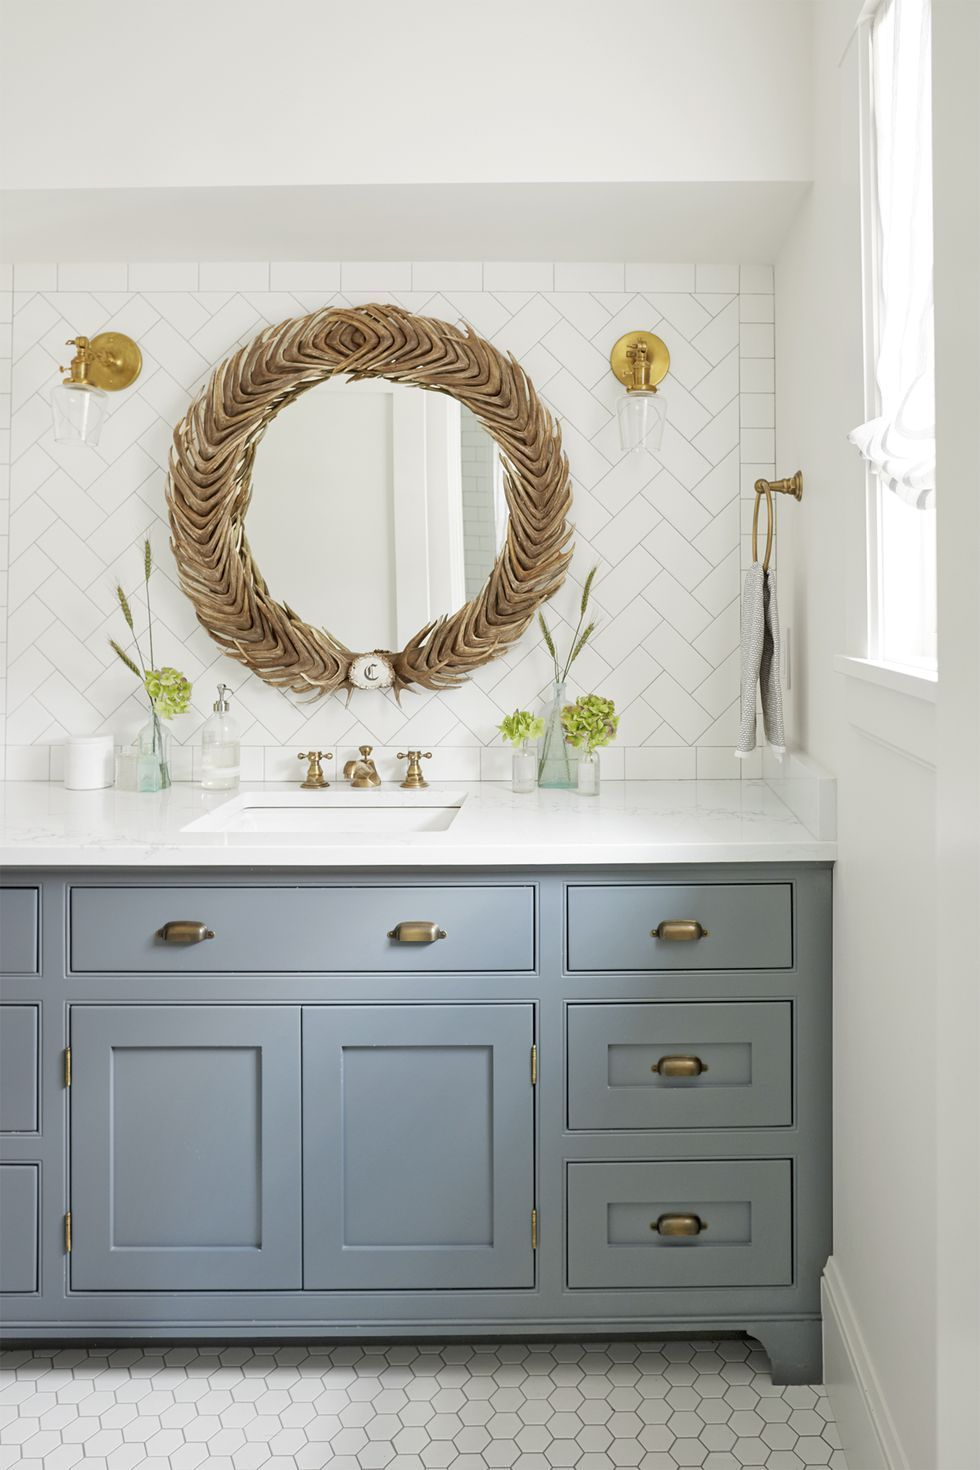 Where Should You Buy Your Bathroom Vanity? Here Are 15 Excellent Options